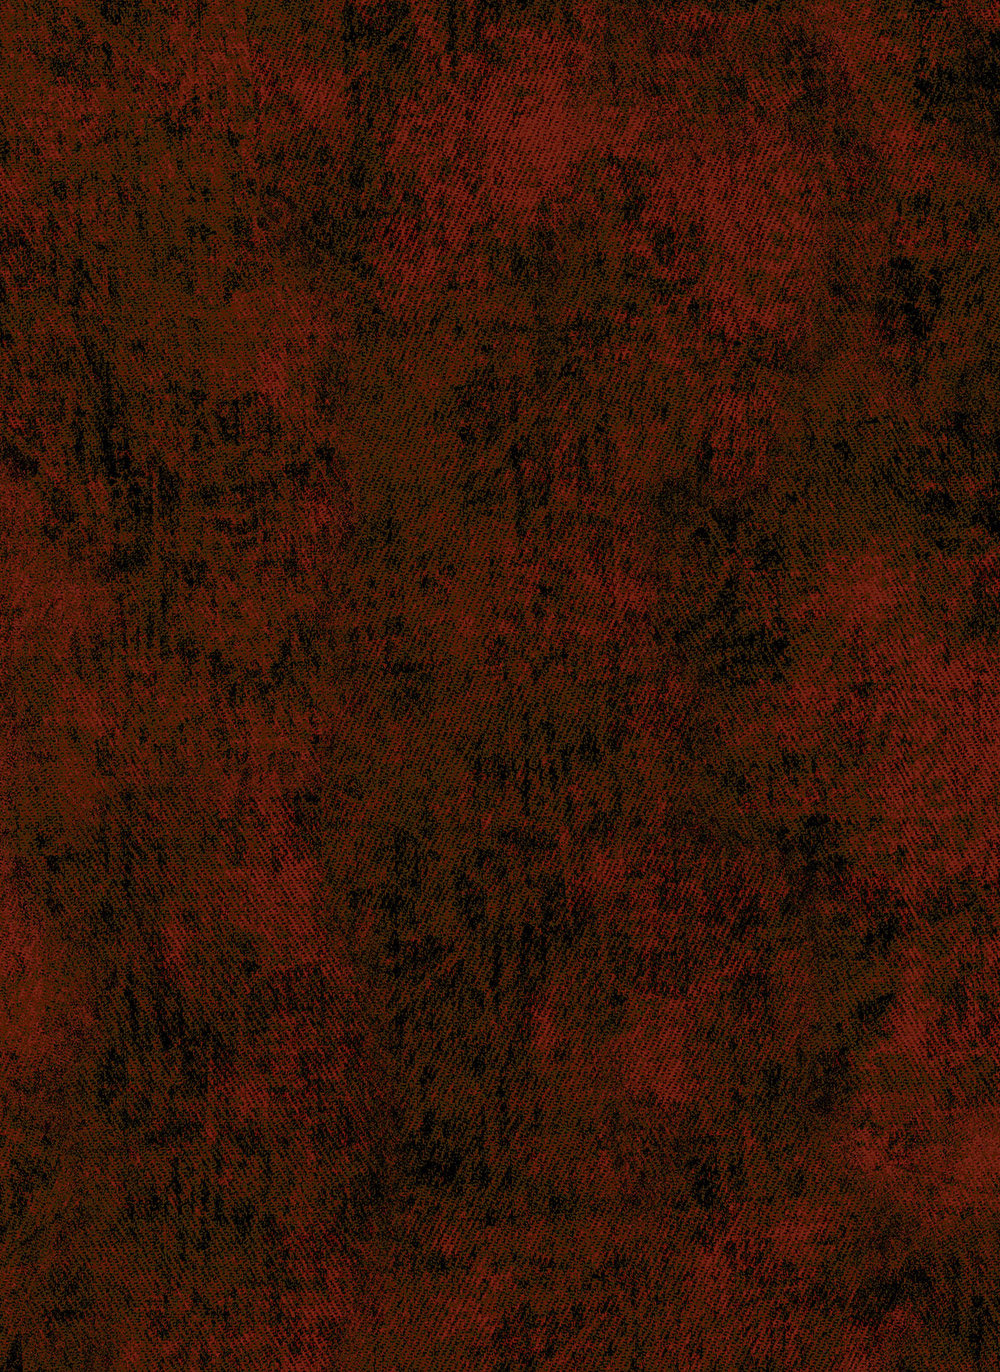 3212-014 Burnt Sienna